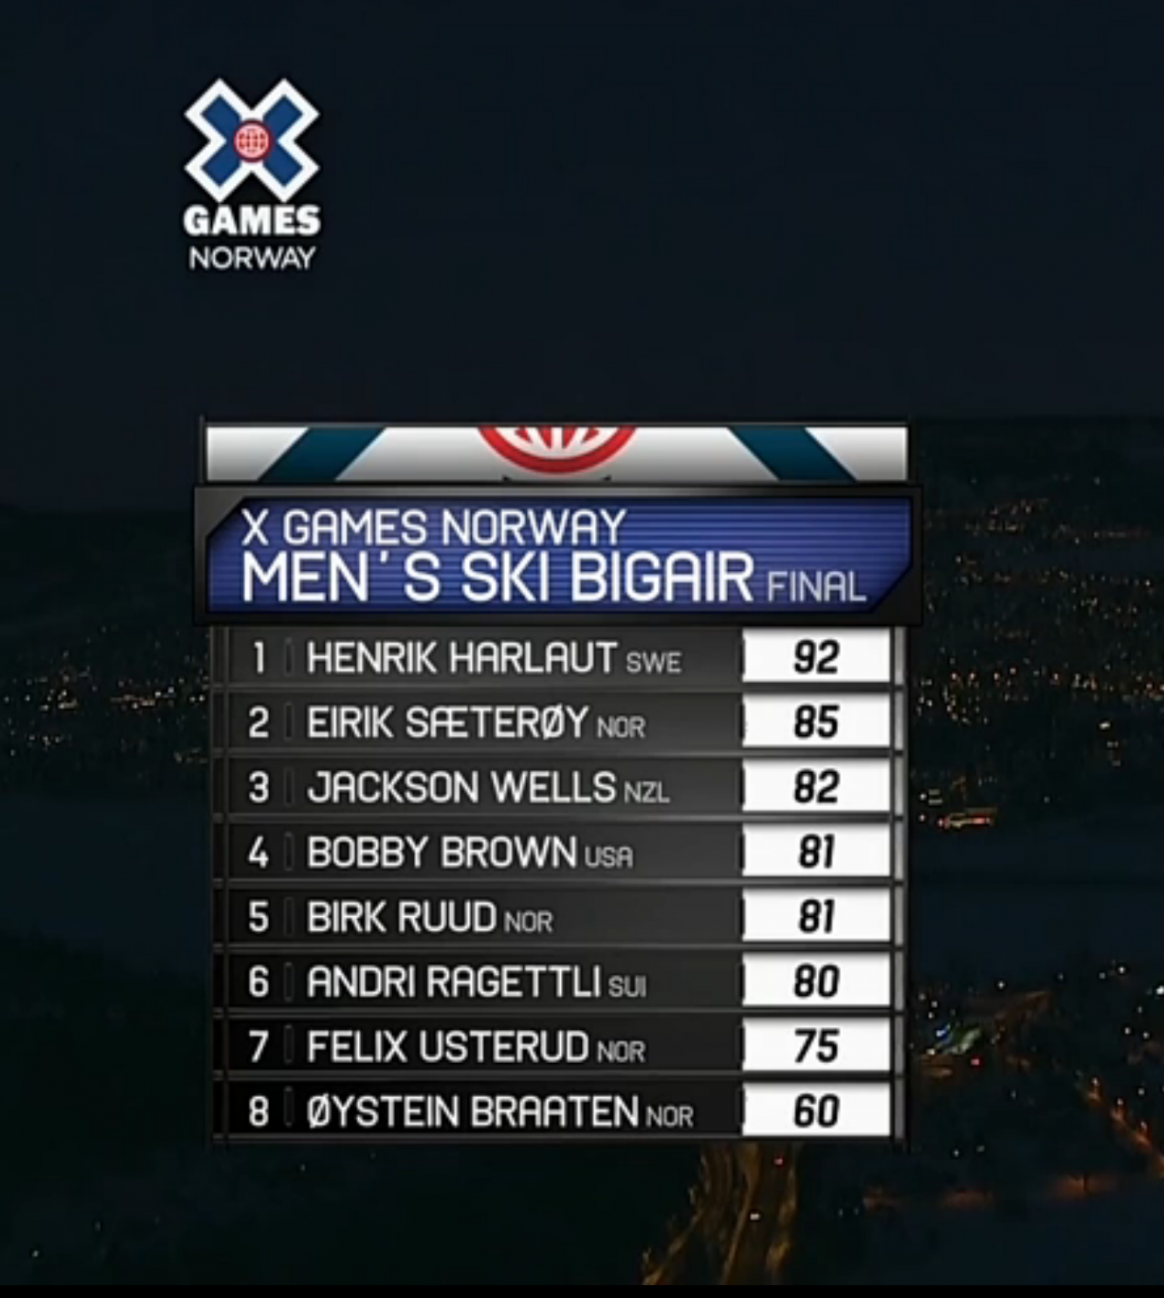 X Games Norway Men's Ski Big Air results